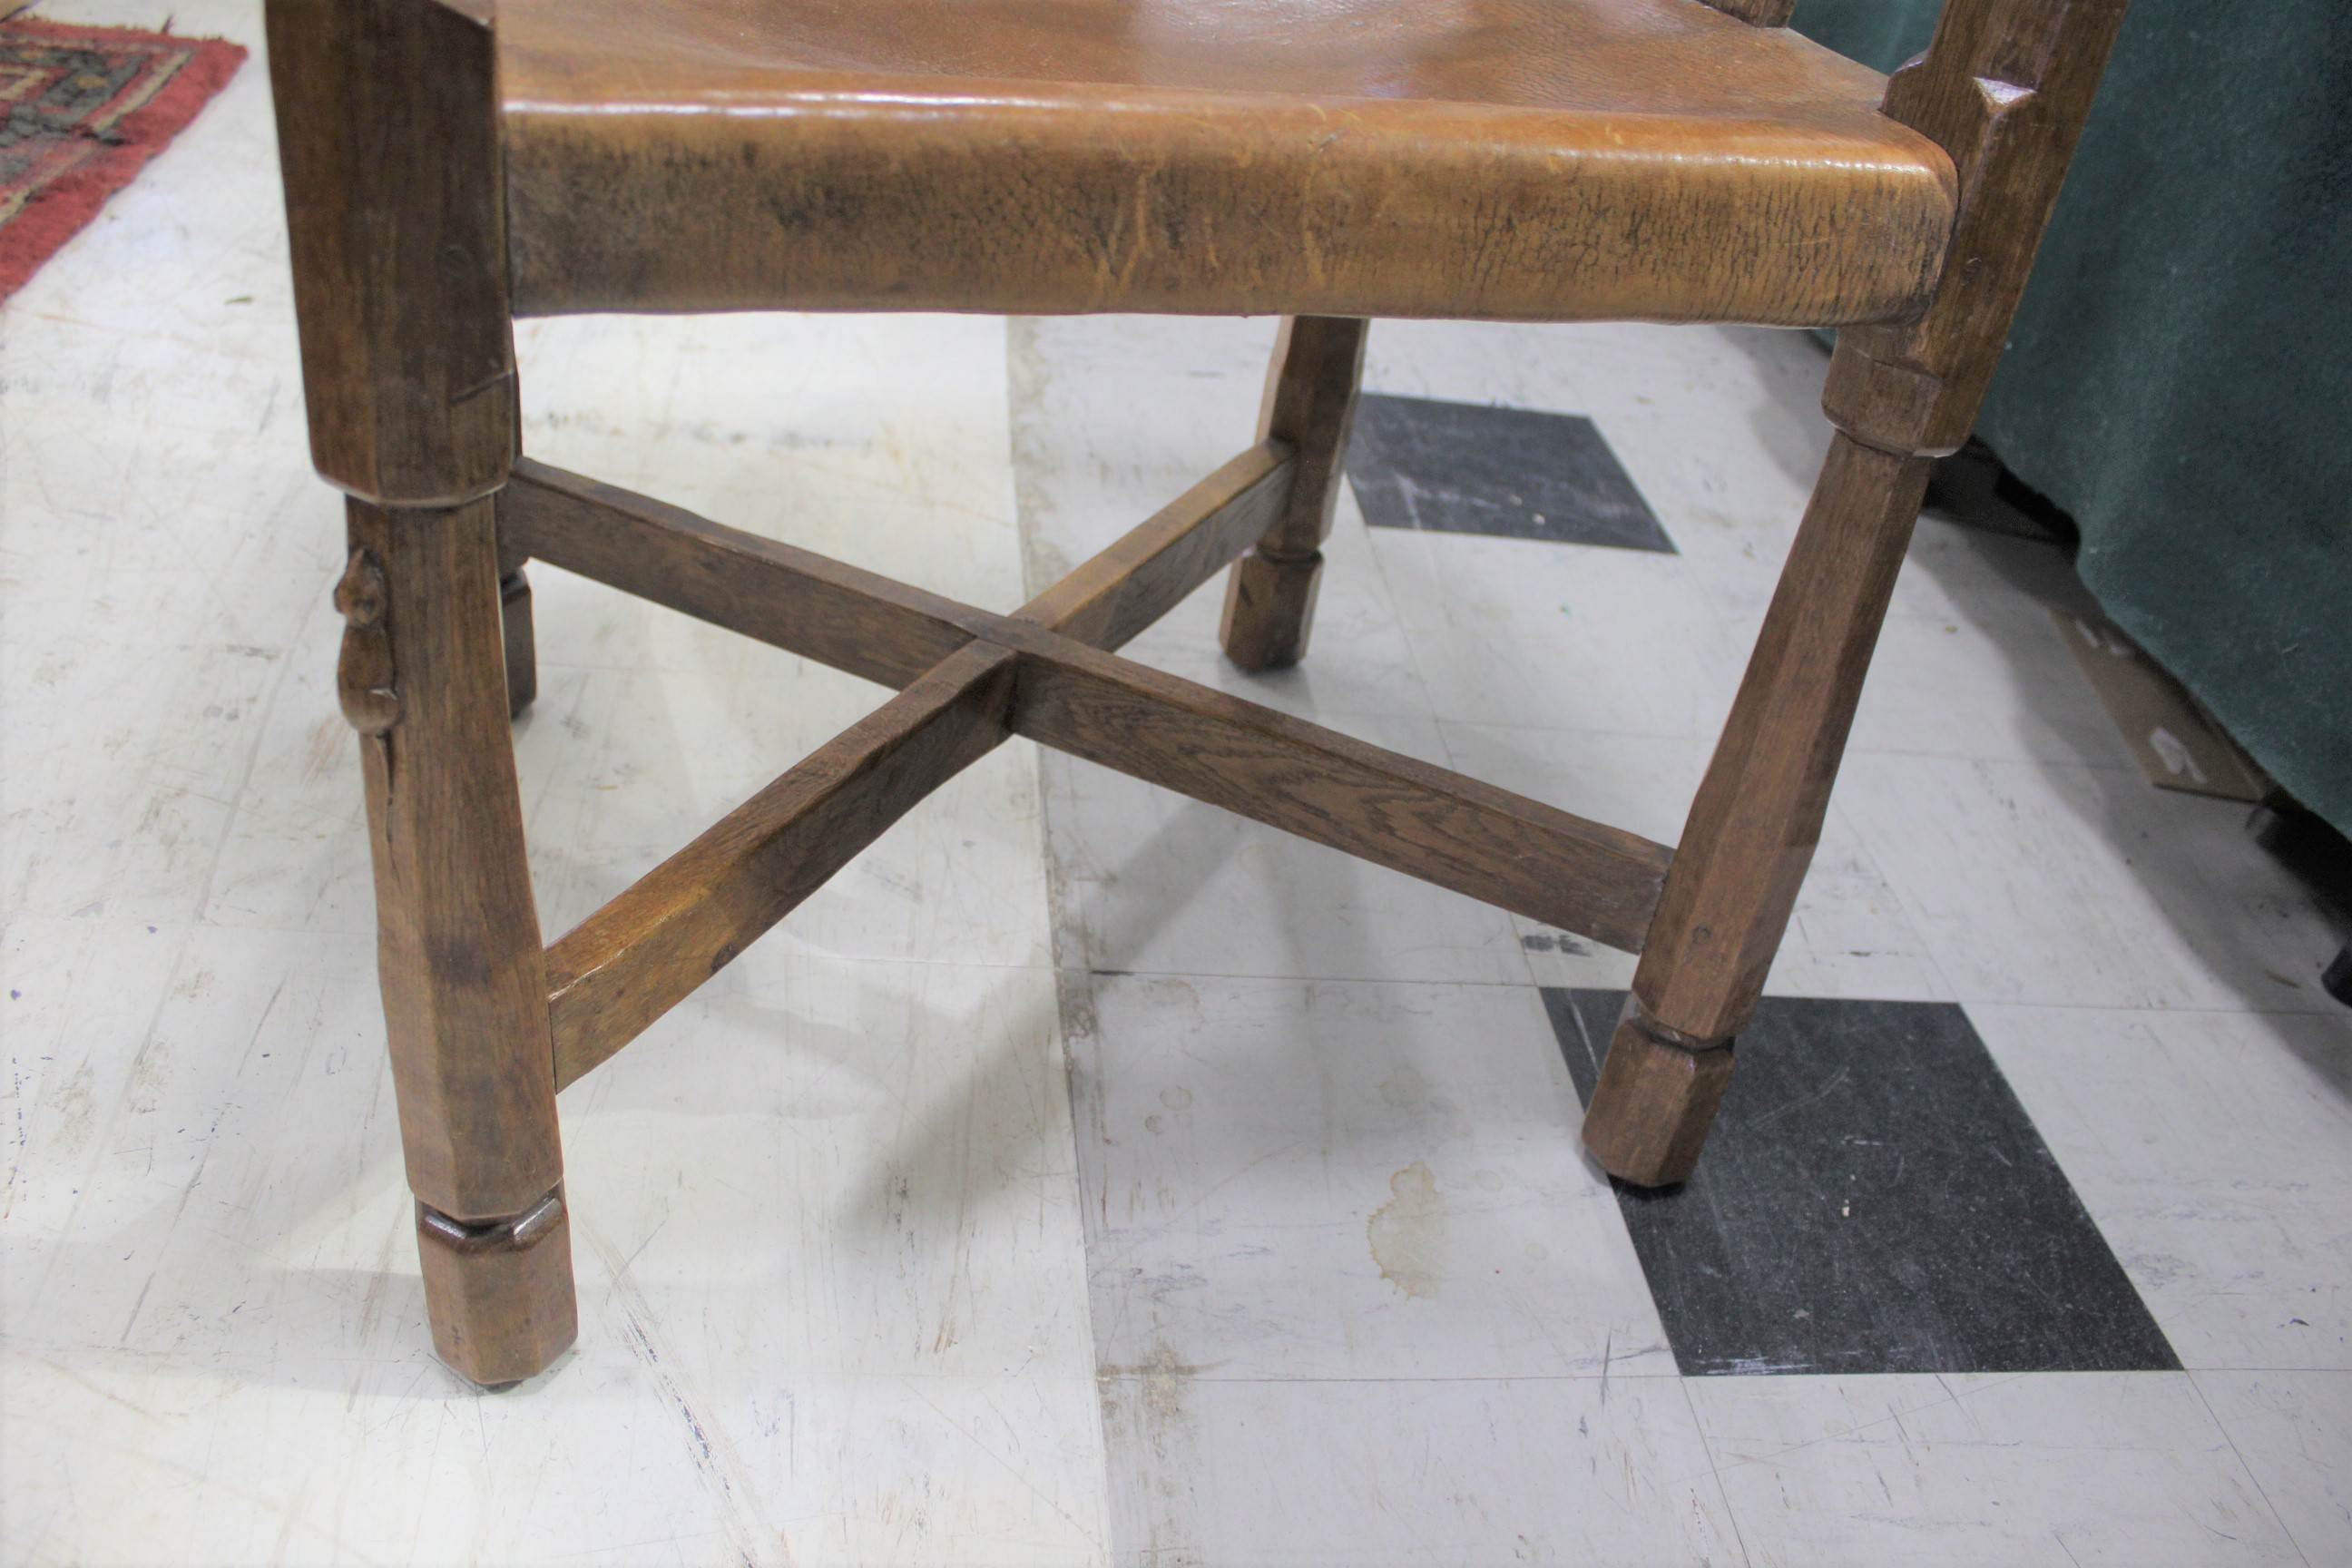 ROBERT THOMPSON OF KILBURN - MOUSEMAN MONKS CHAIR a circa 1920s/1930s oak Monk's armchair with a - Image 21 of 27